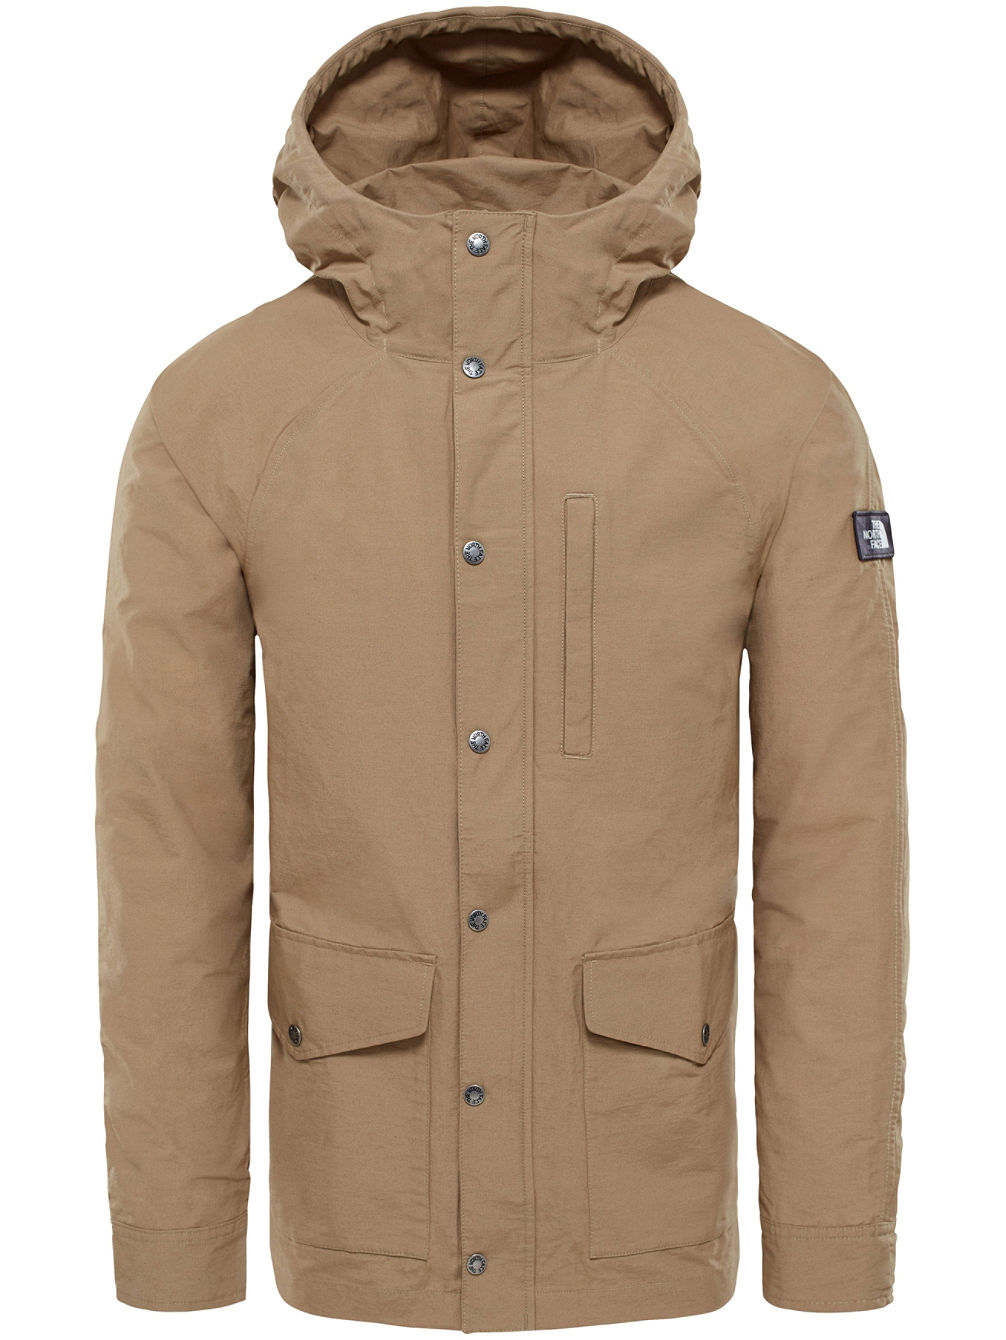 Wax Canvas Utility Jacket